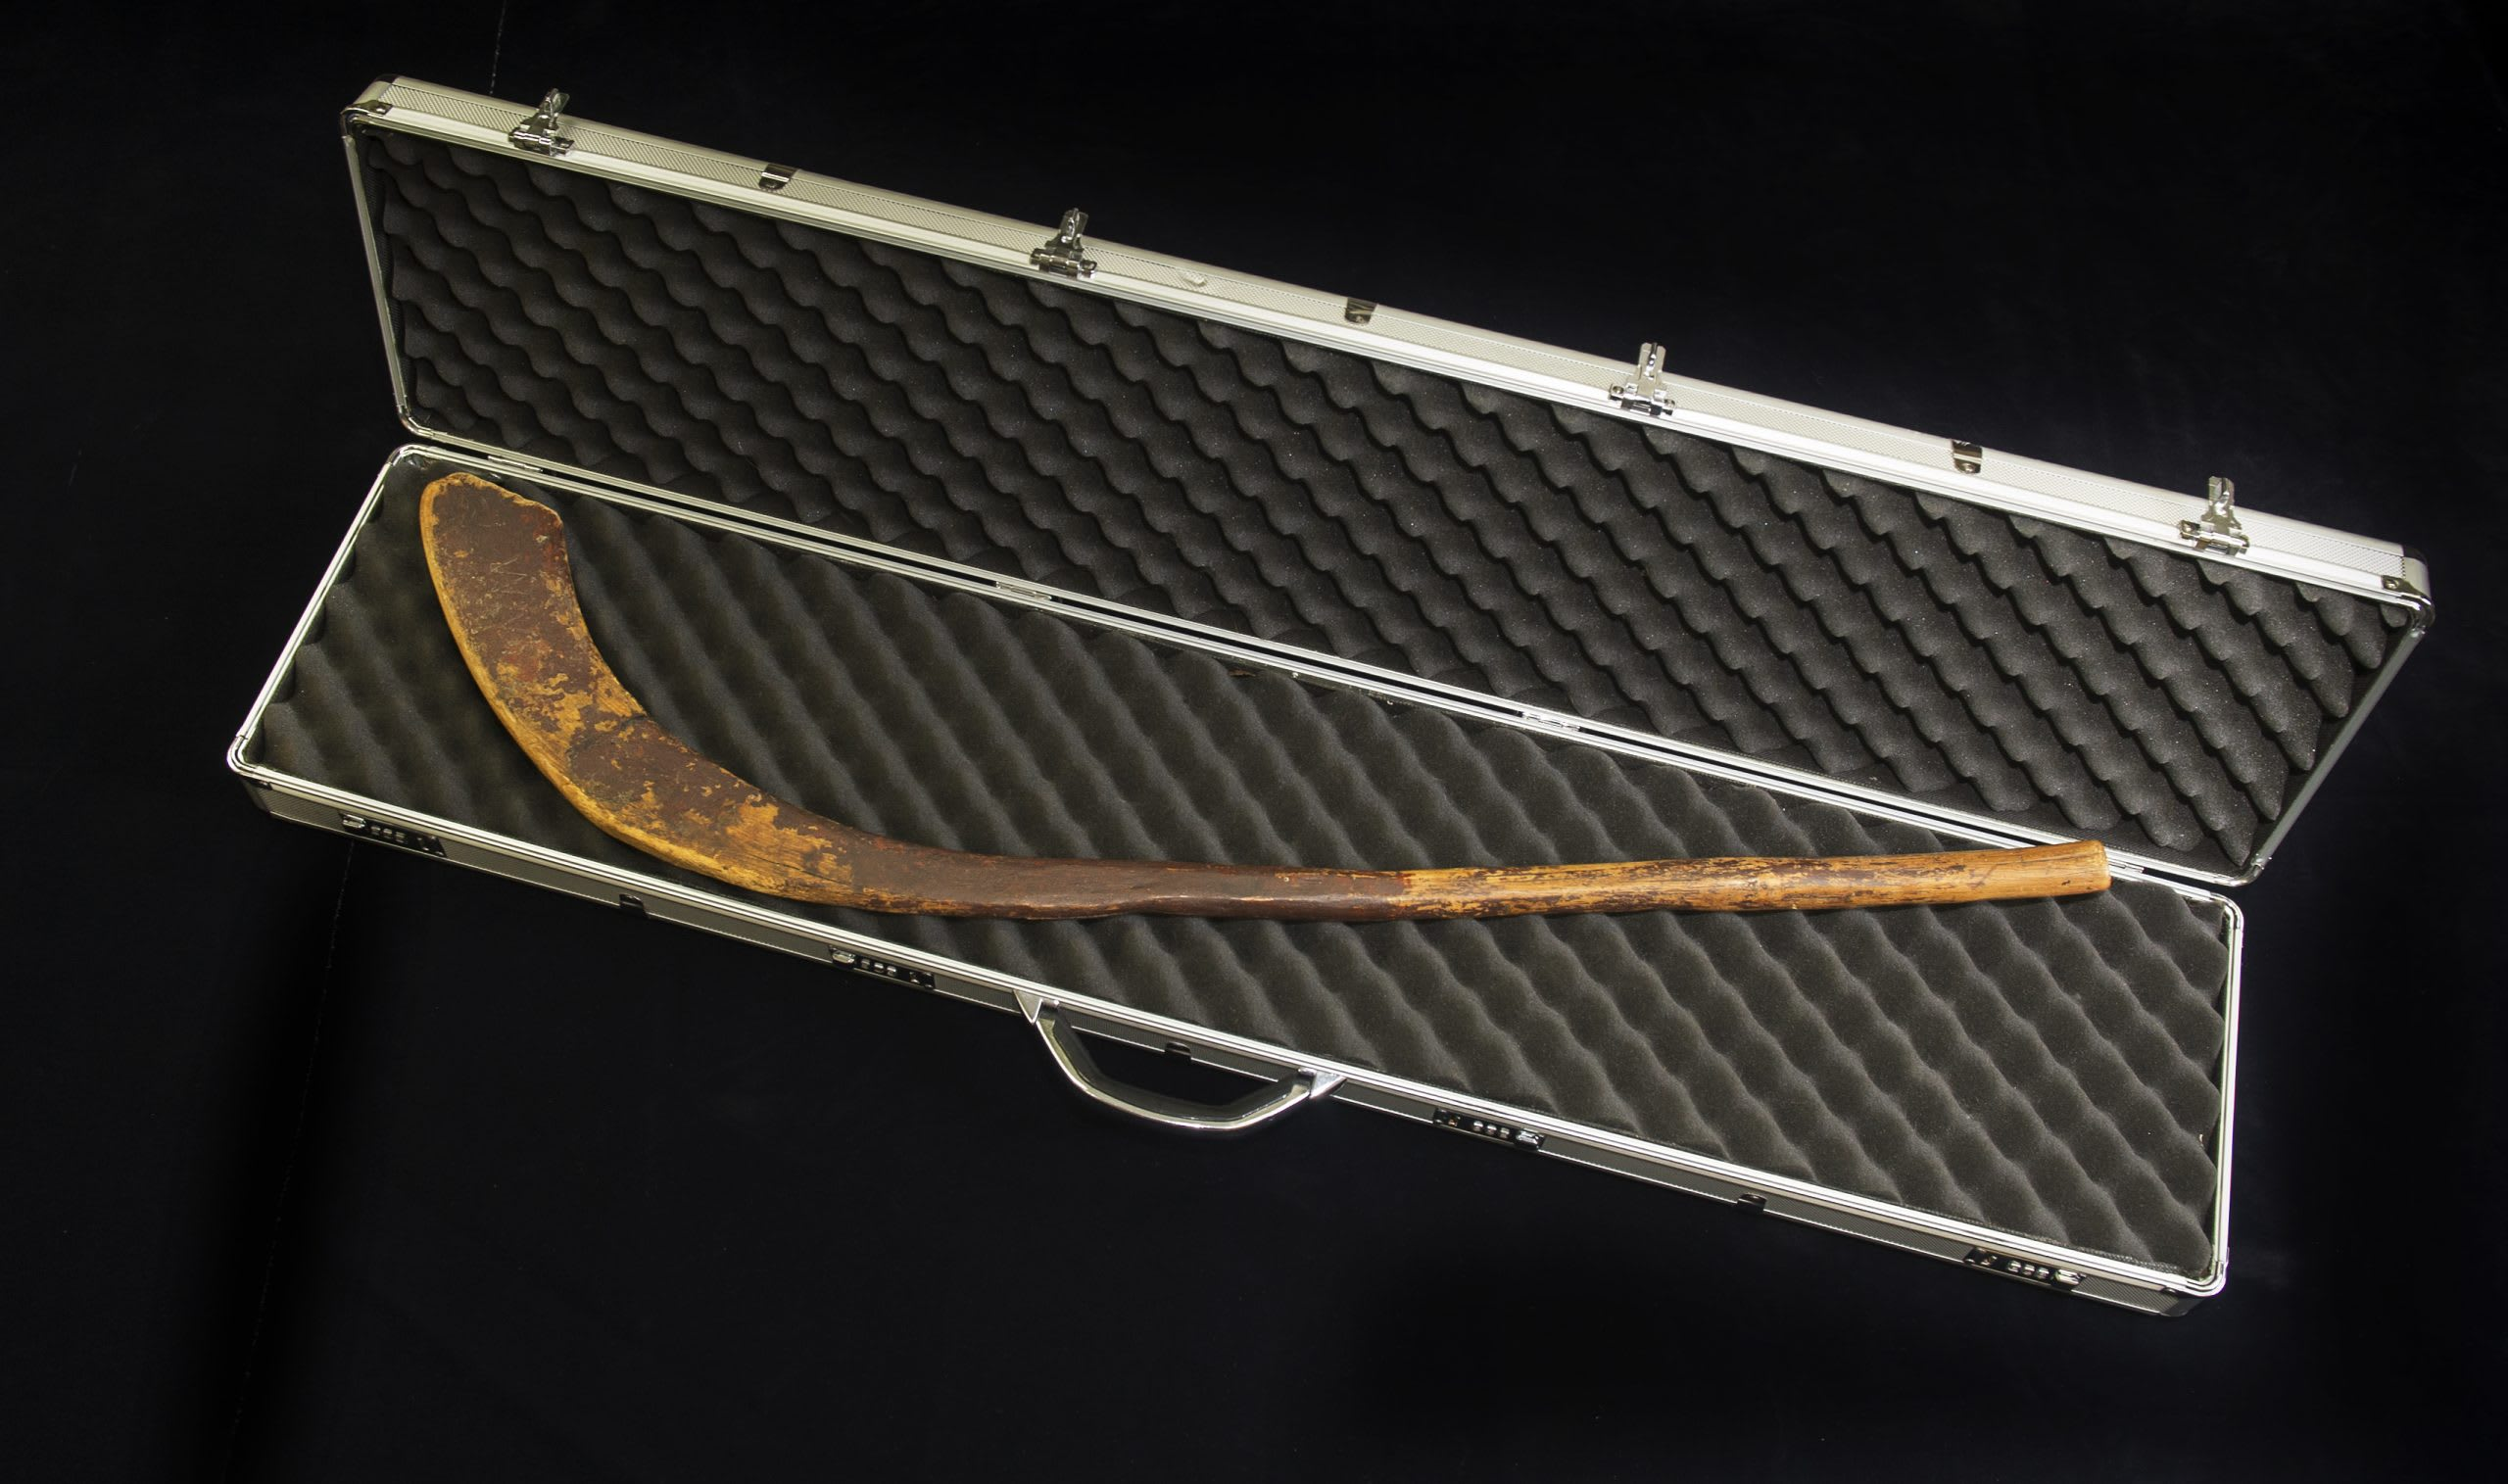 The Oldest Hockey Stick in the World